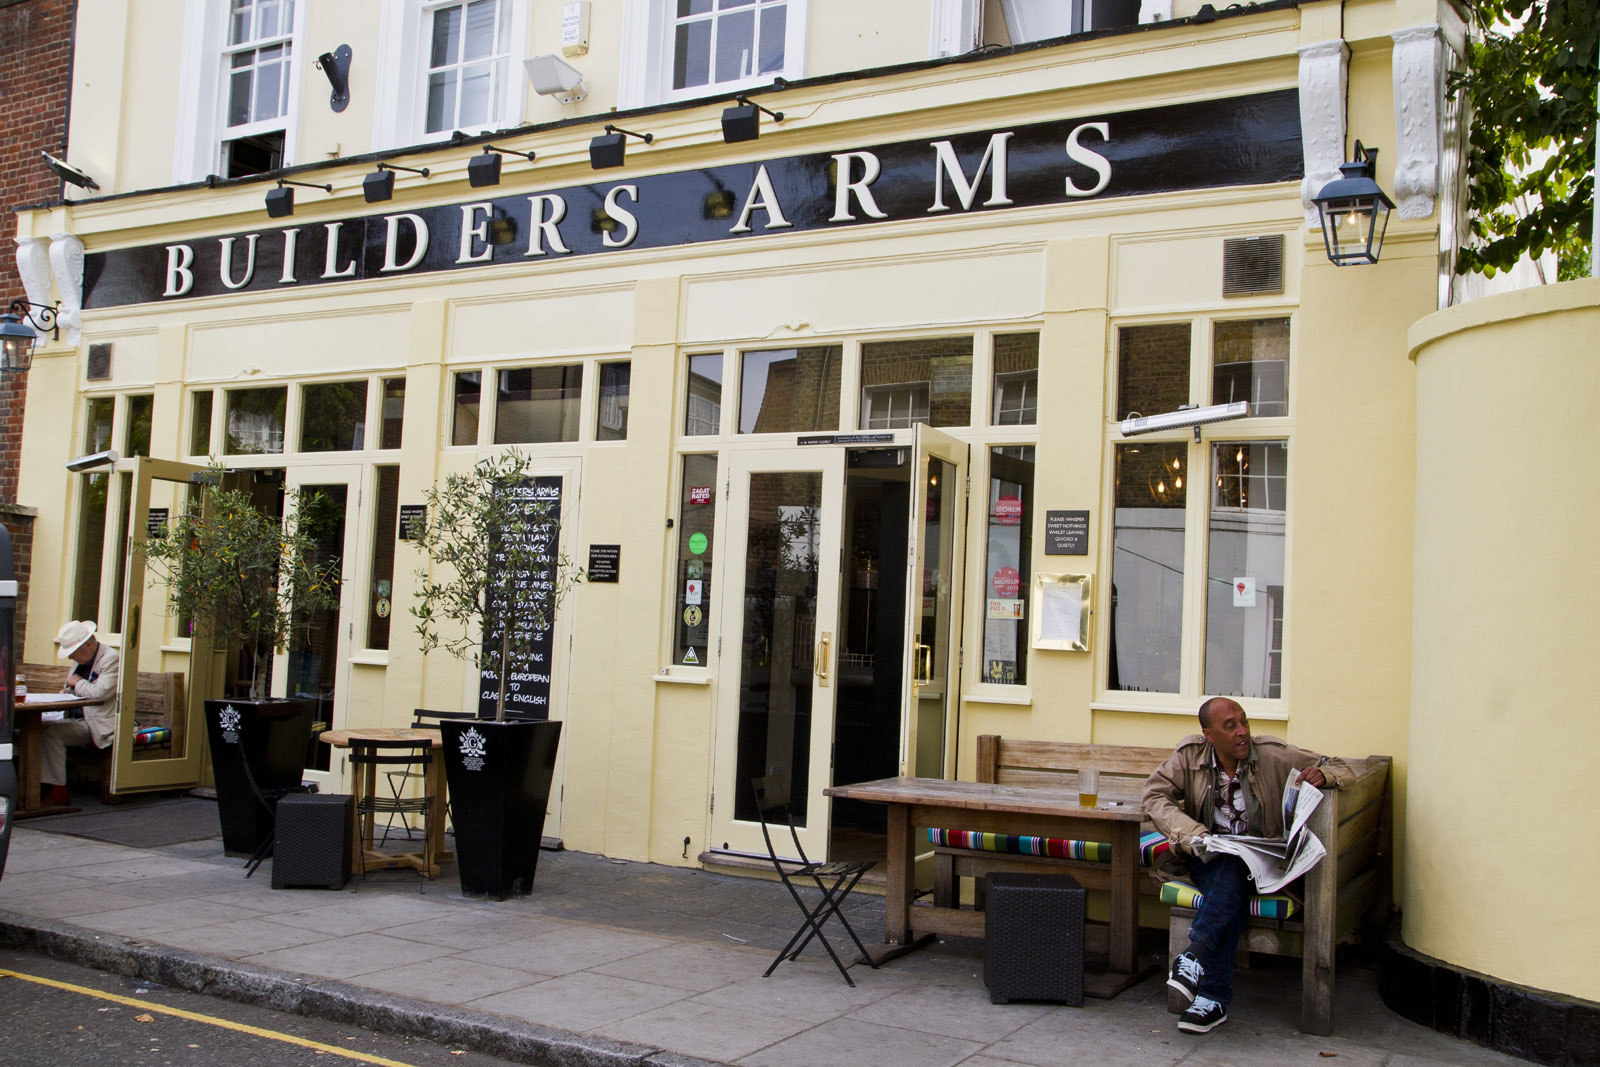 The Builders Arms - London